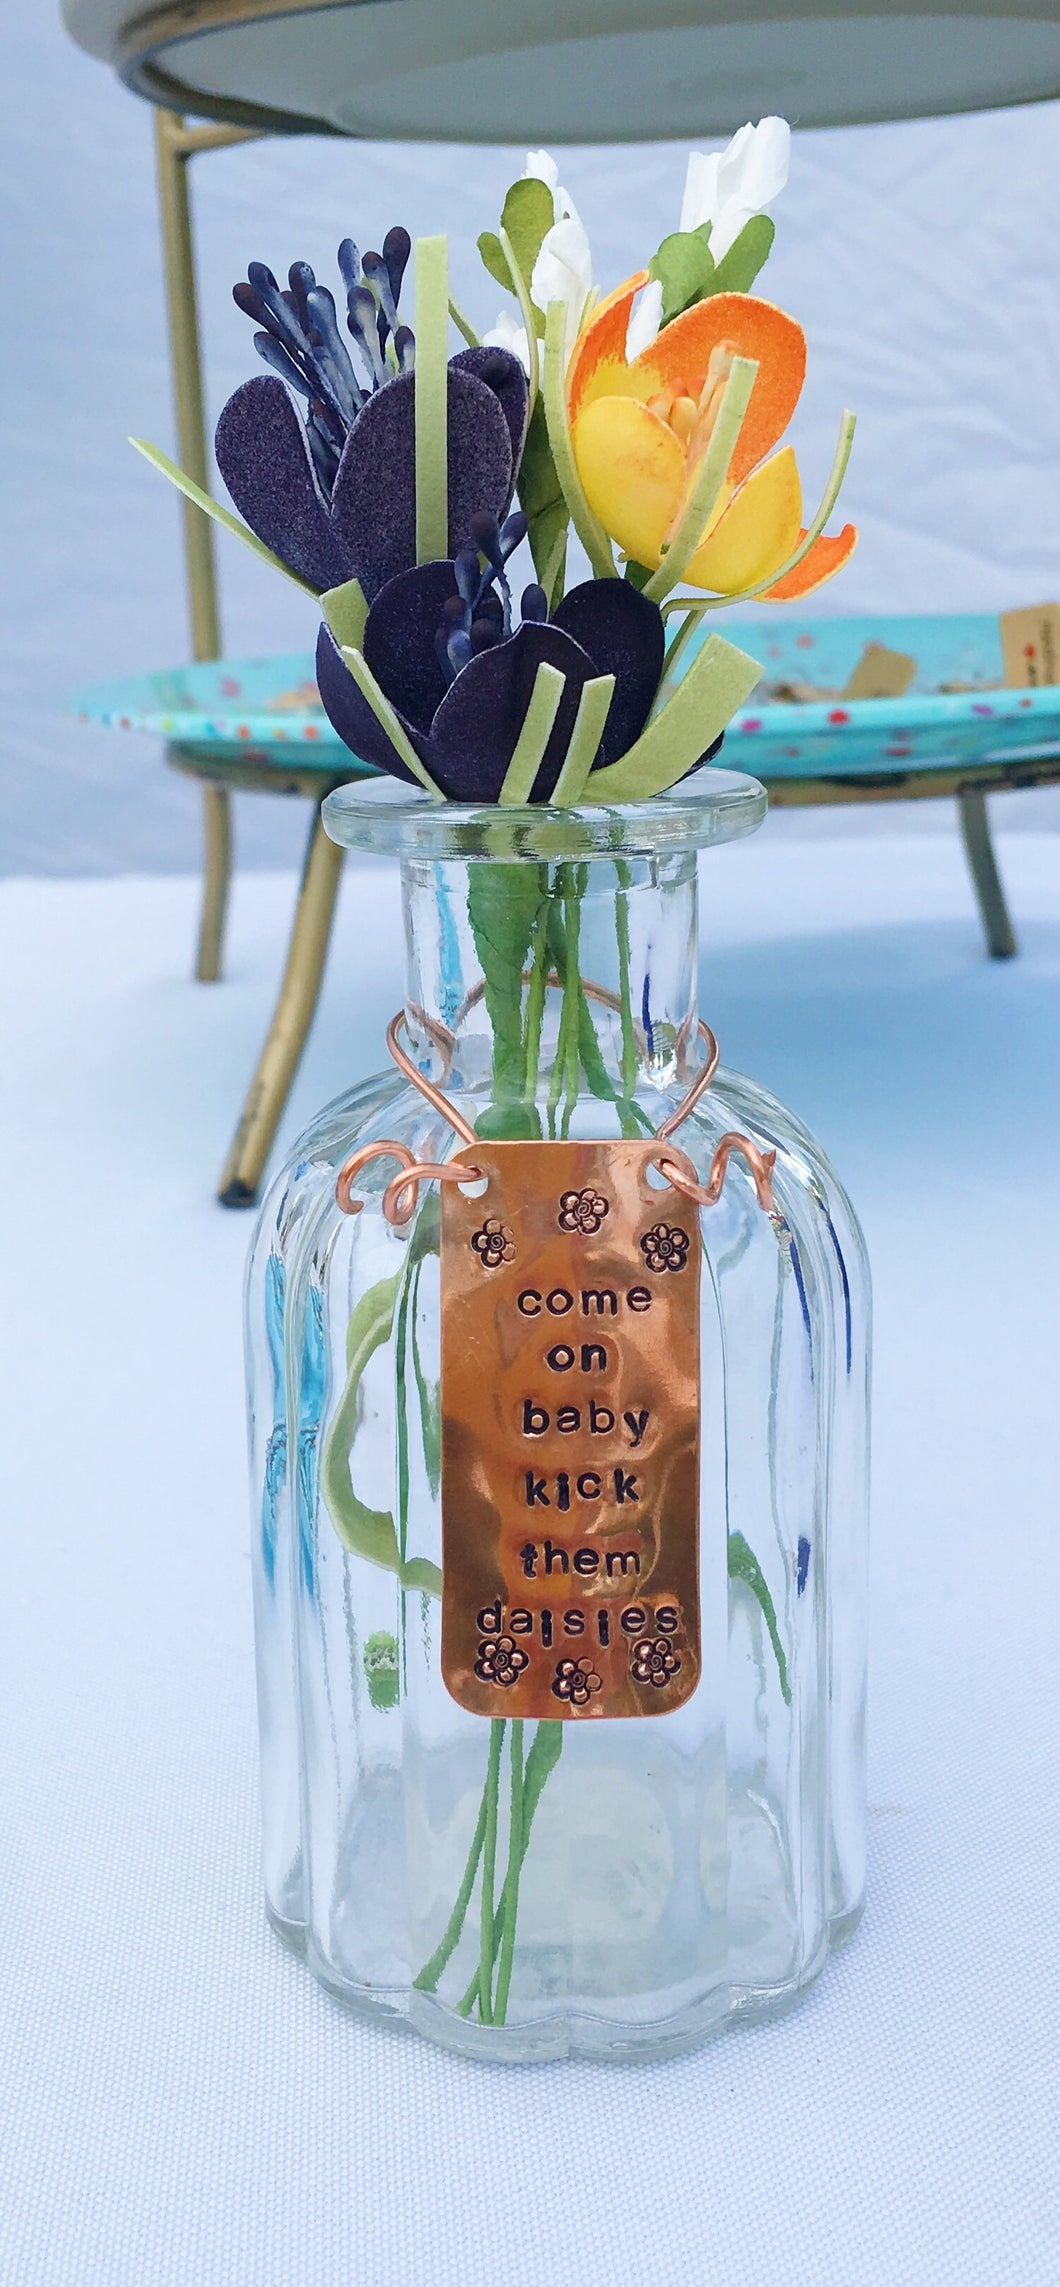 Hand stamped-rap quote-come on baby kick them daisies-quote vase-host gift-flower vase-home decor